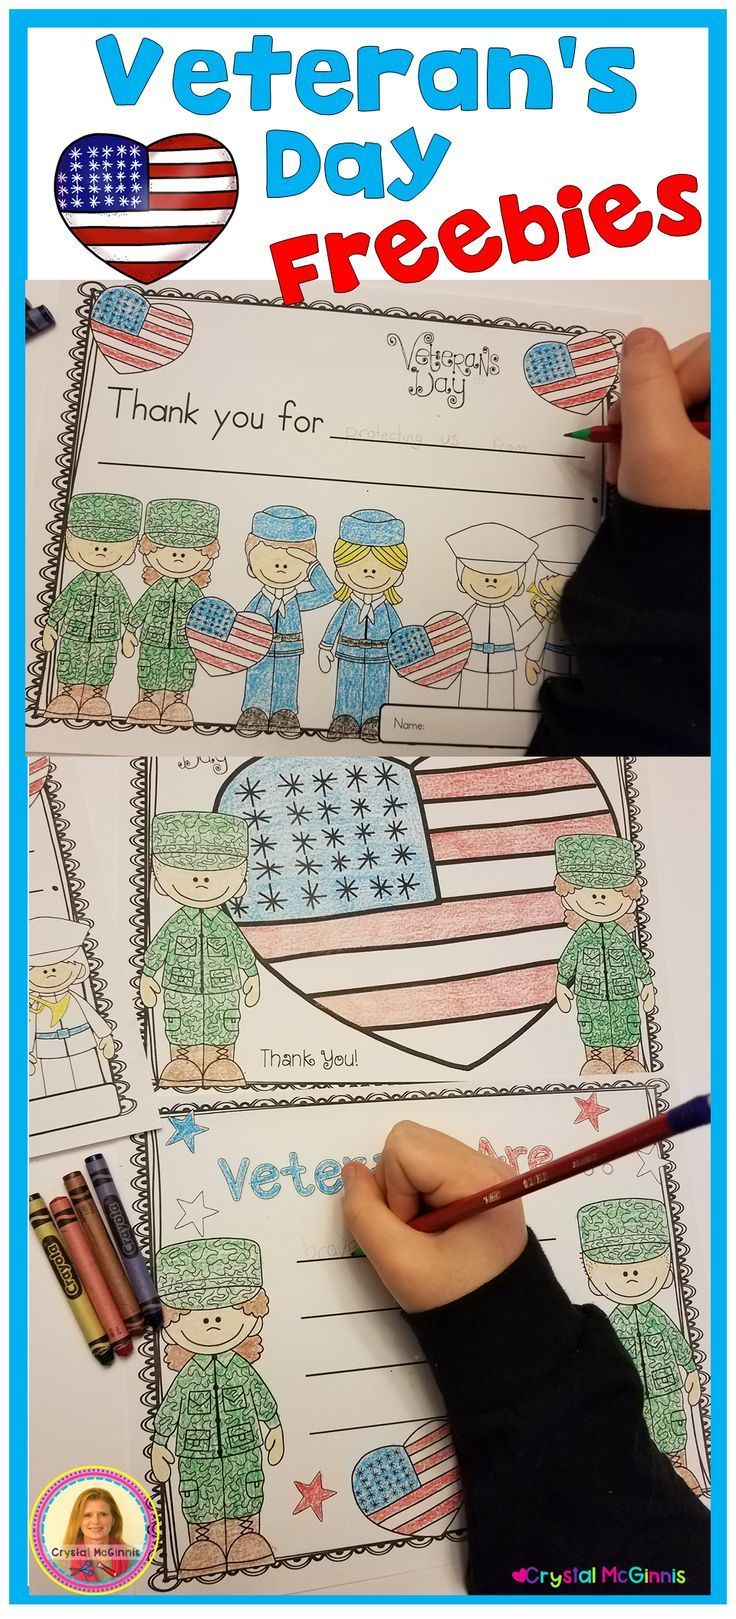 Veteran's Day is a day for us to celebrate and appreciate our Veterans.  Here are a few examples of appreciation cards that we've used to honor veterans. They were simple to create, and each student could choose which card they prefer, depending on their skill level. (Just coloring, coloring & writing) If you will be celebrating our Veterans, you are welcome to use these printables in your classroom. #veteransdayhonoring Veteran's Day is a day for us to celebrate and appreciate our Veterans.  He #veteransdayhonoring